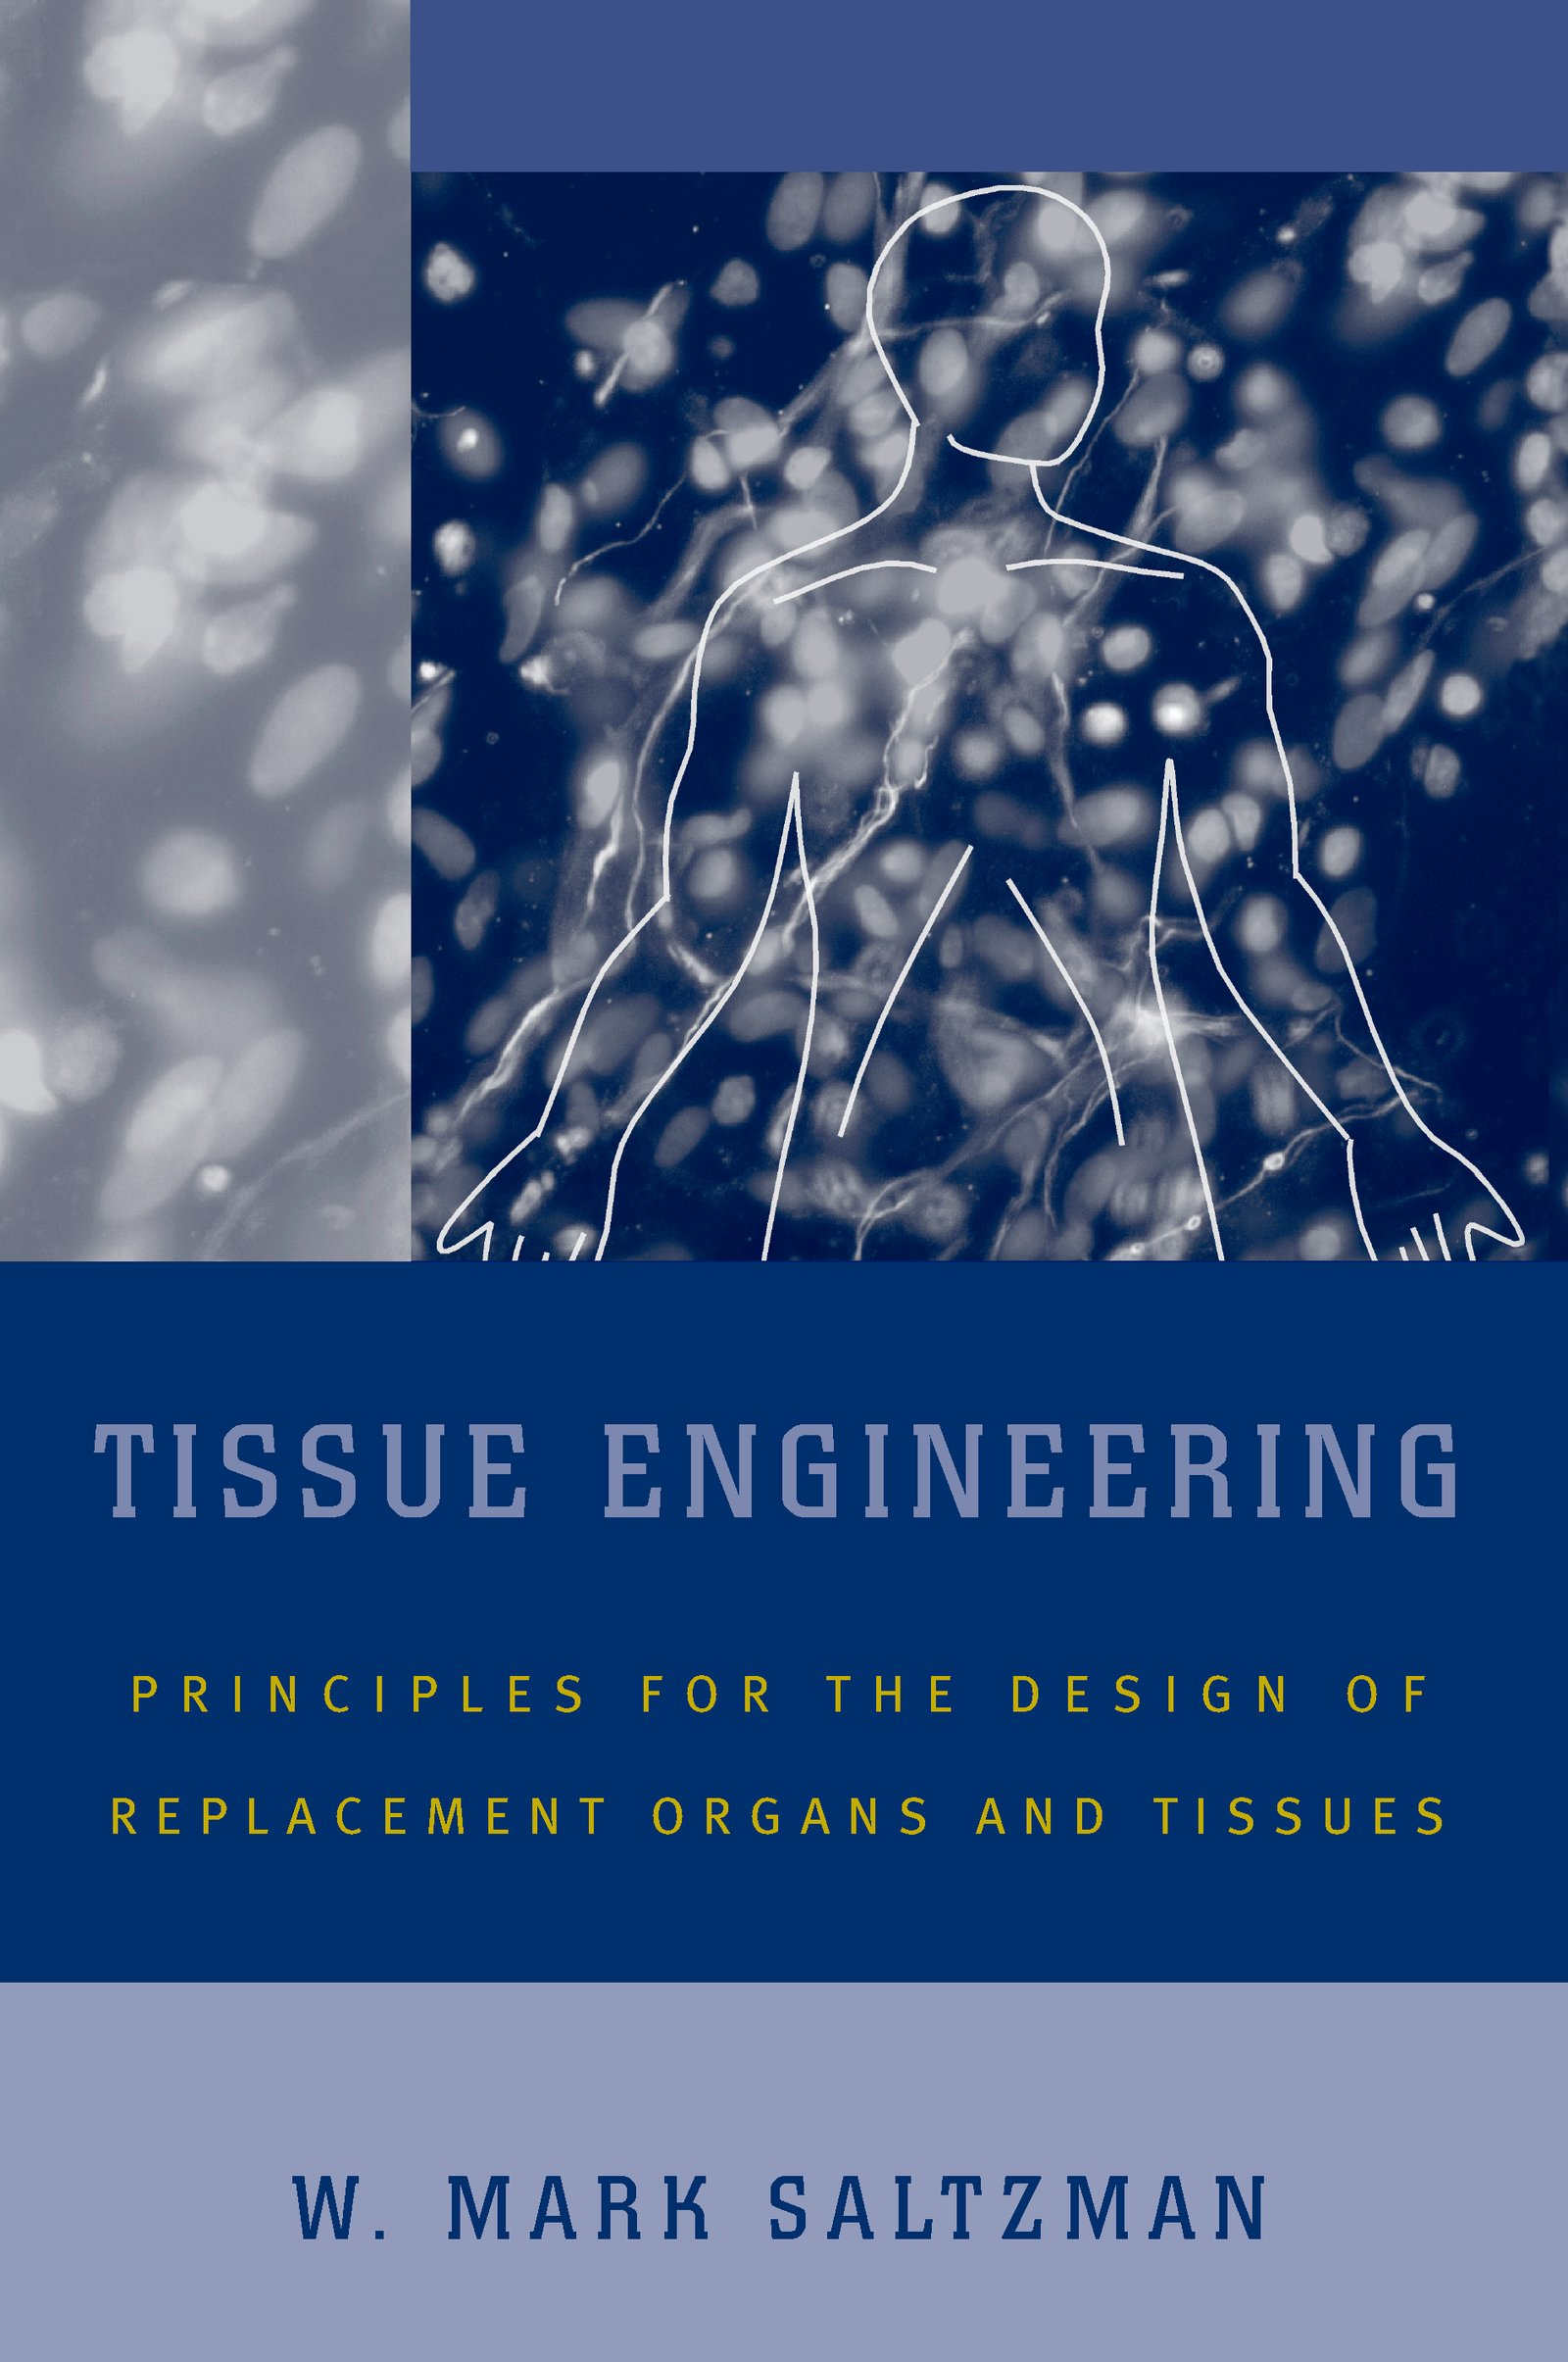 Tissue EngineeringEngineering Principles for the Design of Replacement Organs and Tissues